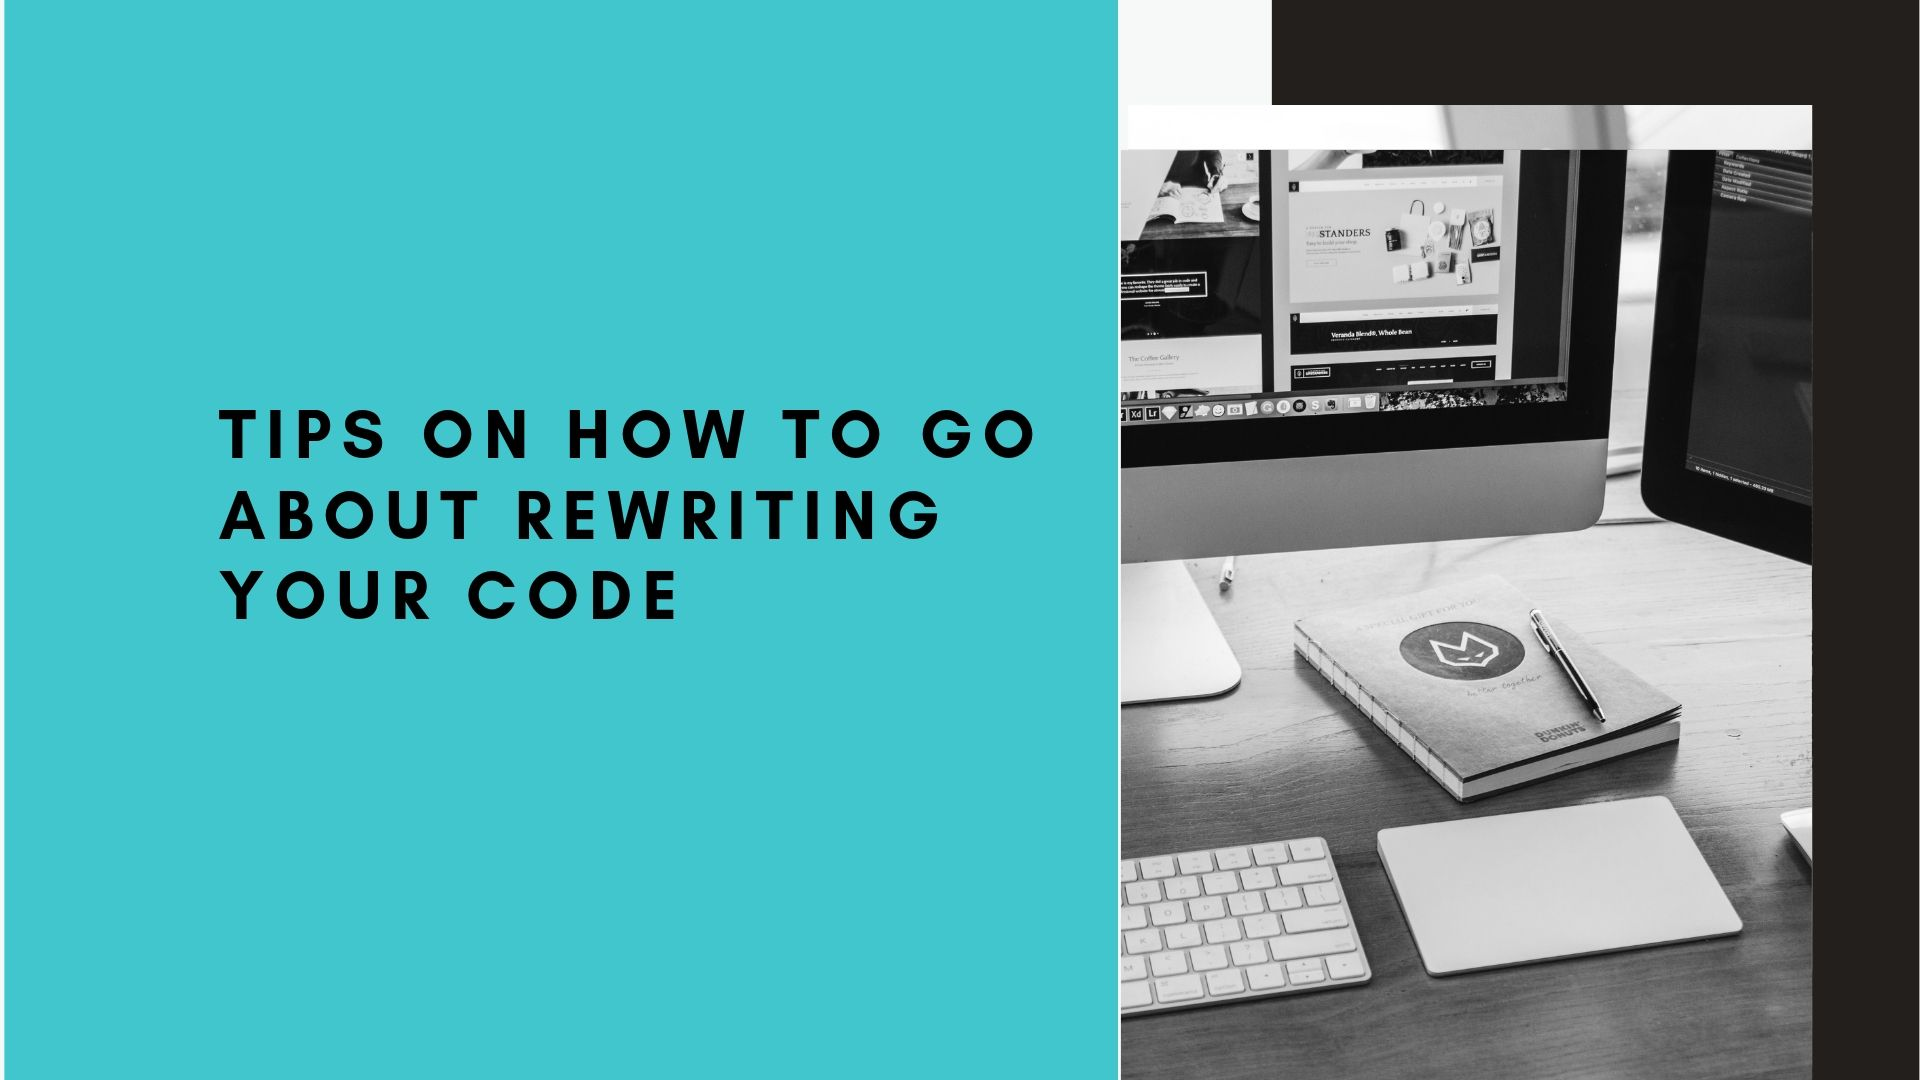 Tips On How To Go About Rewriting Your Code